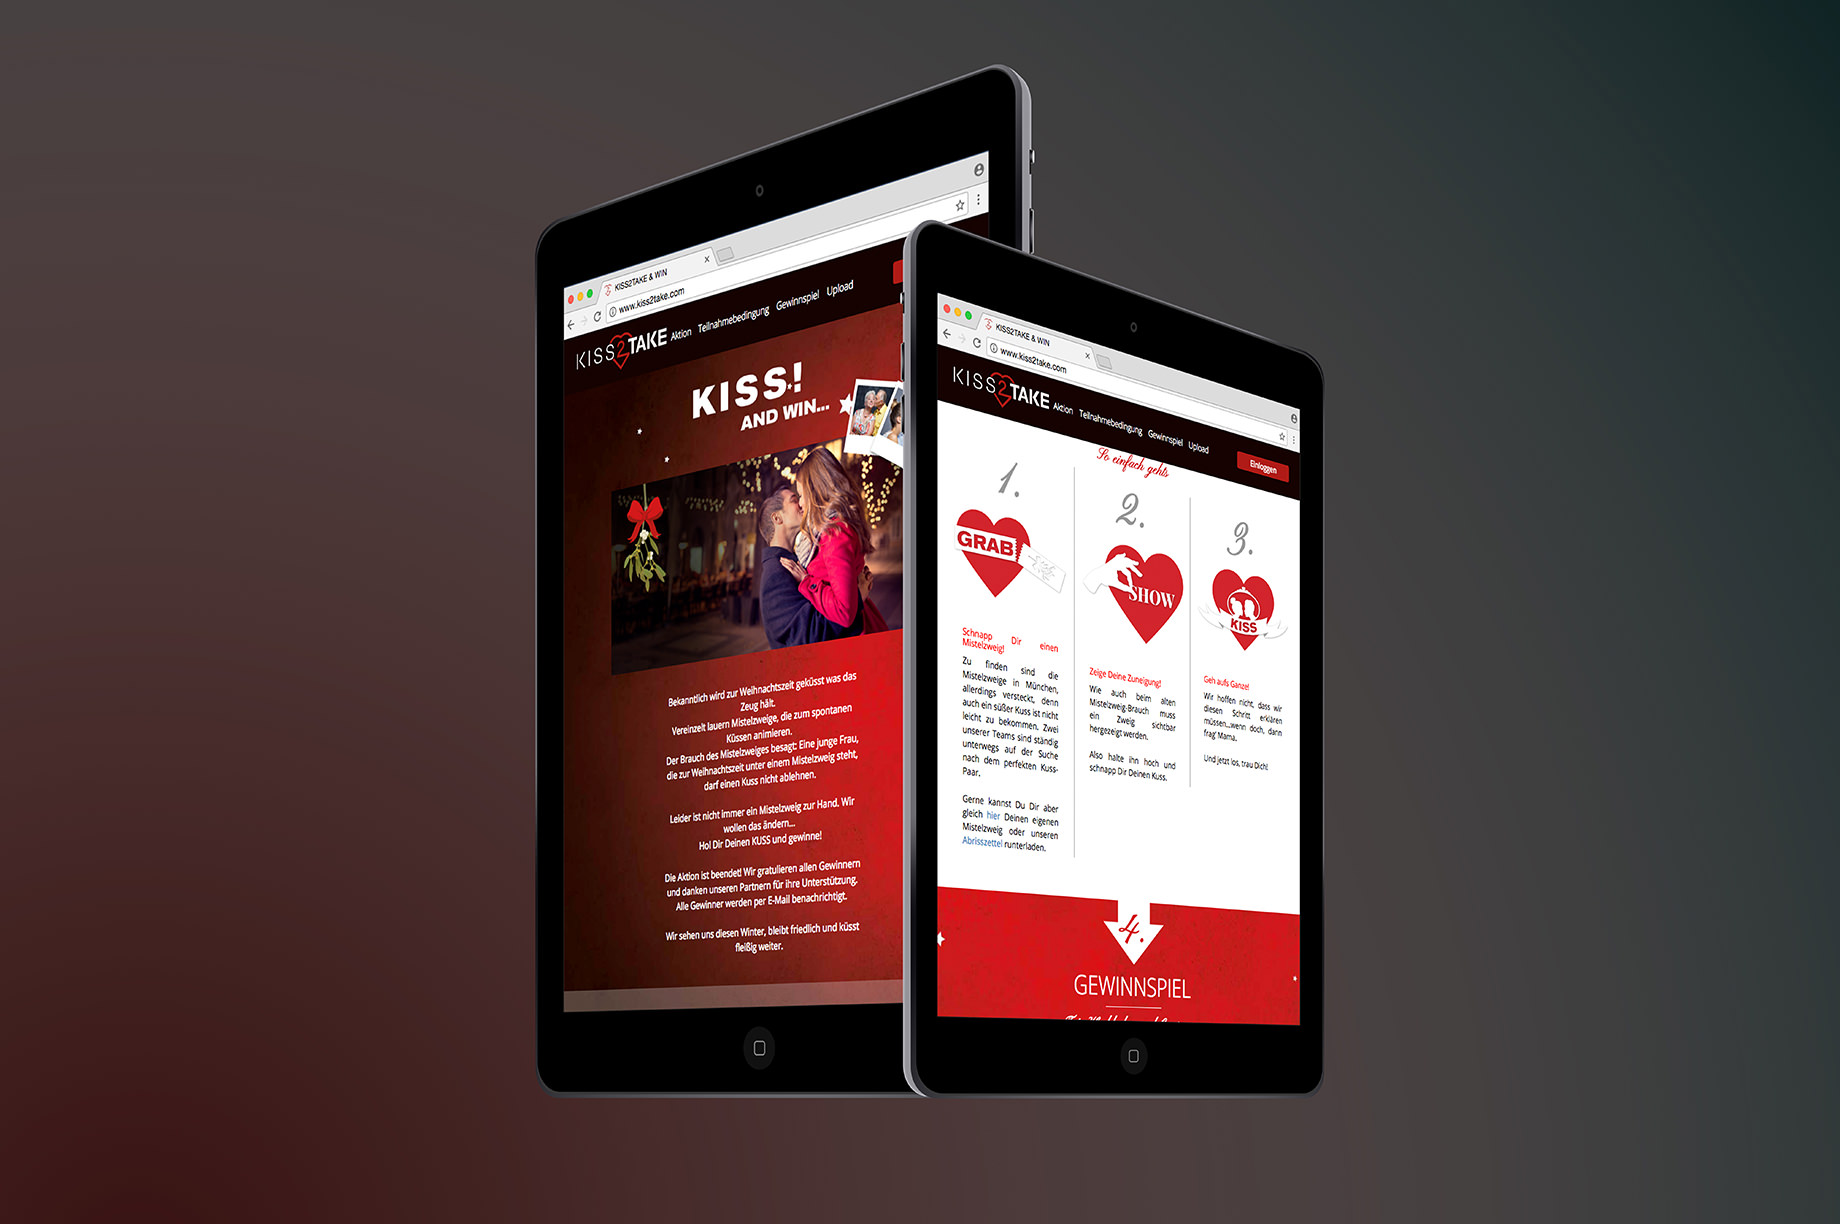 Tablet Website Kiss 2 Take